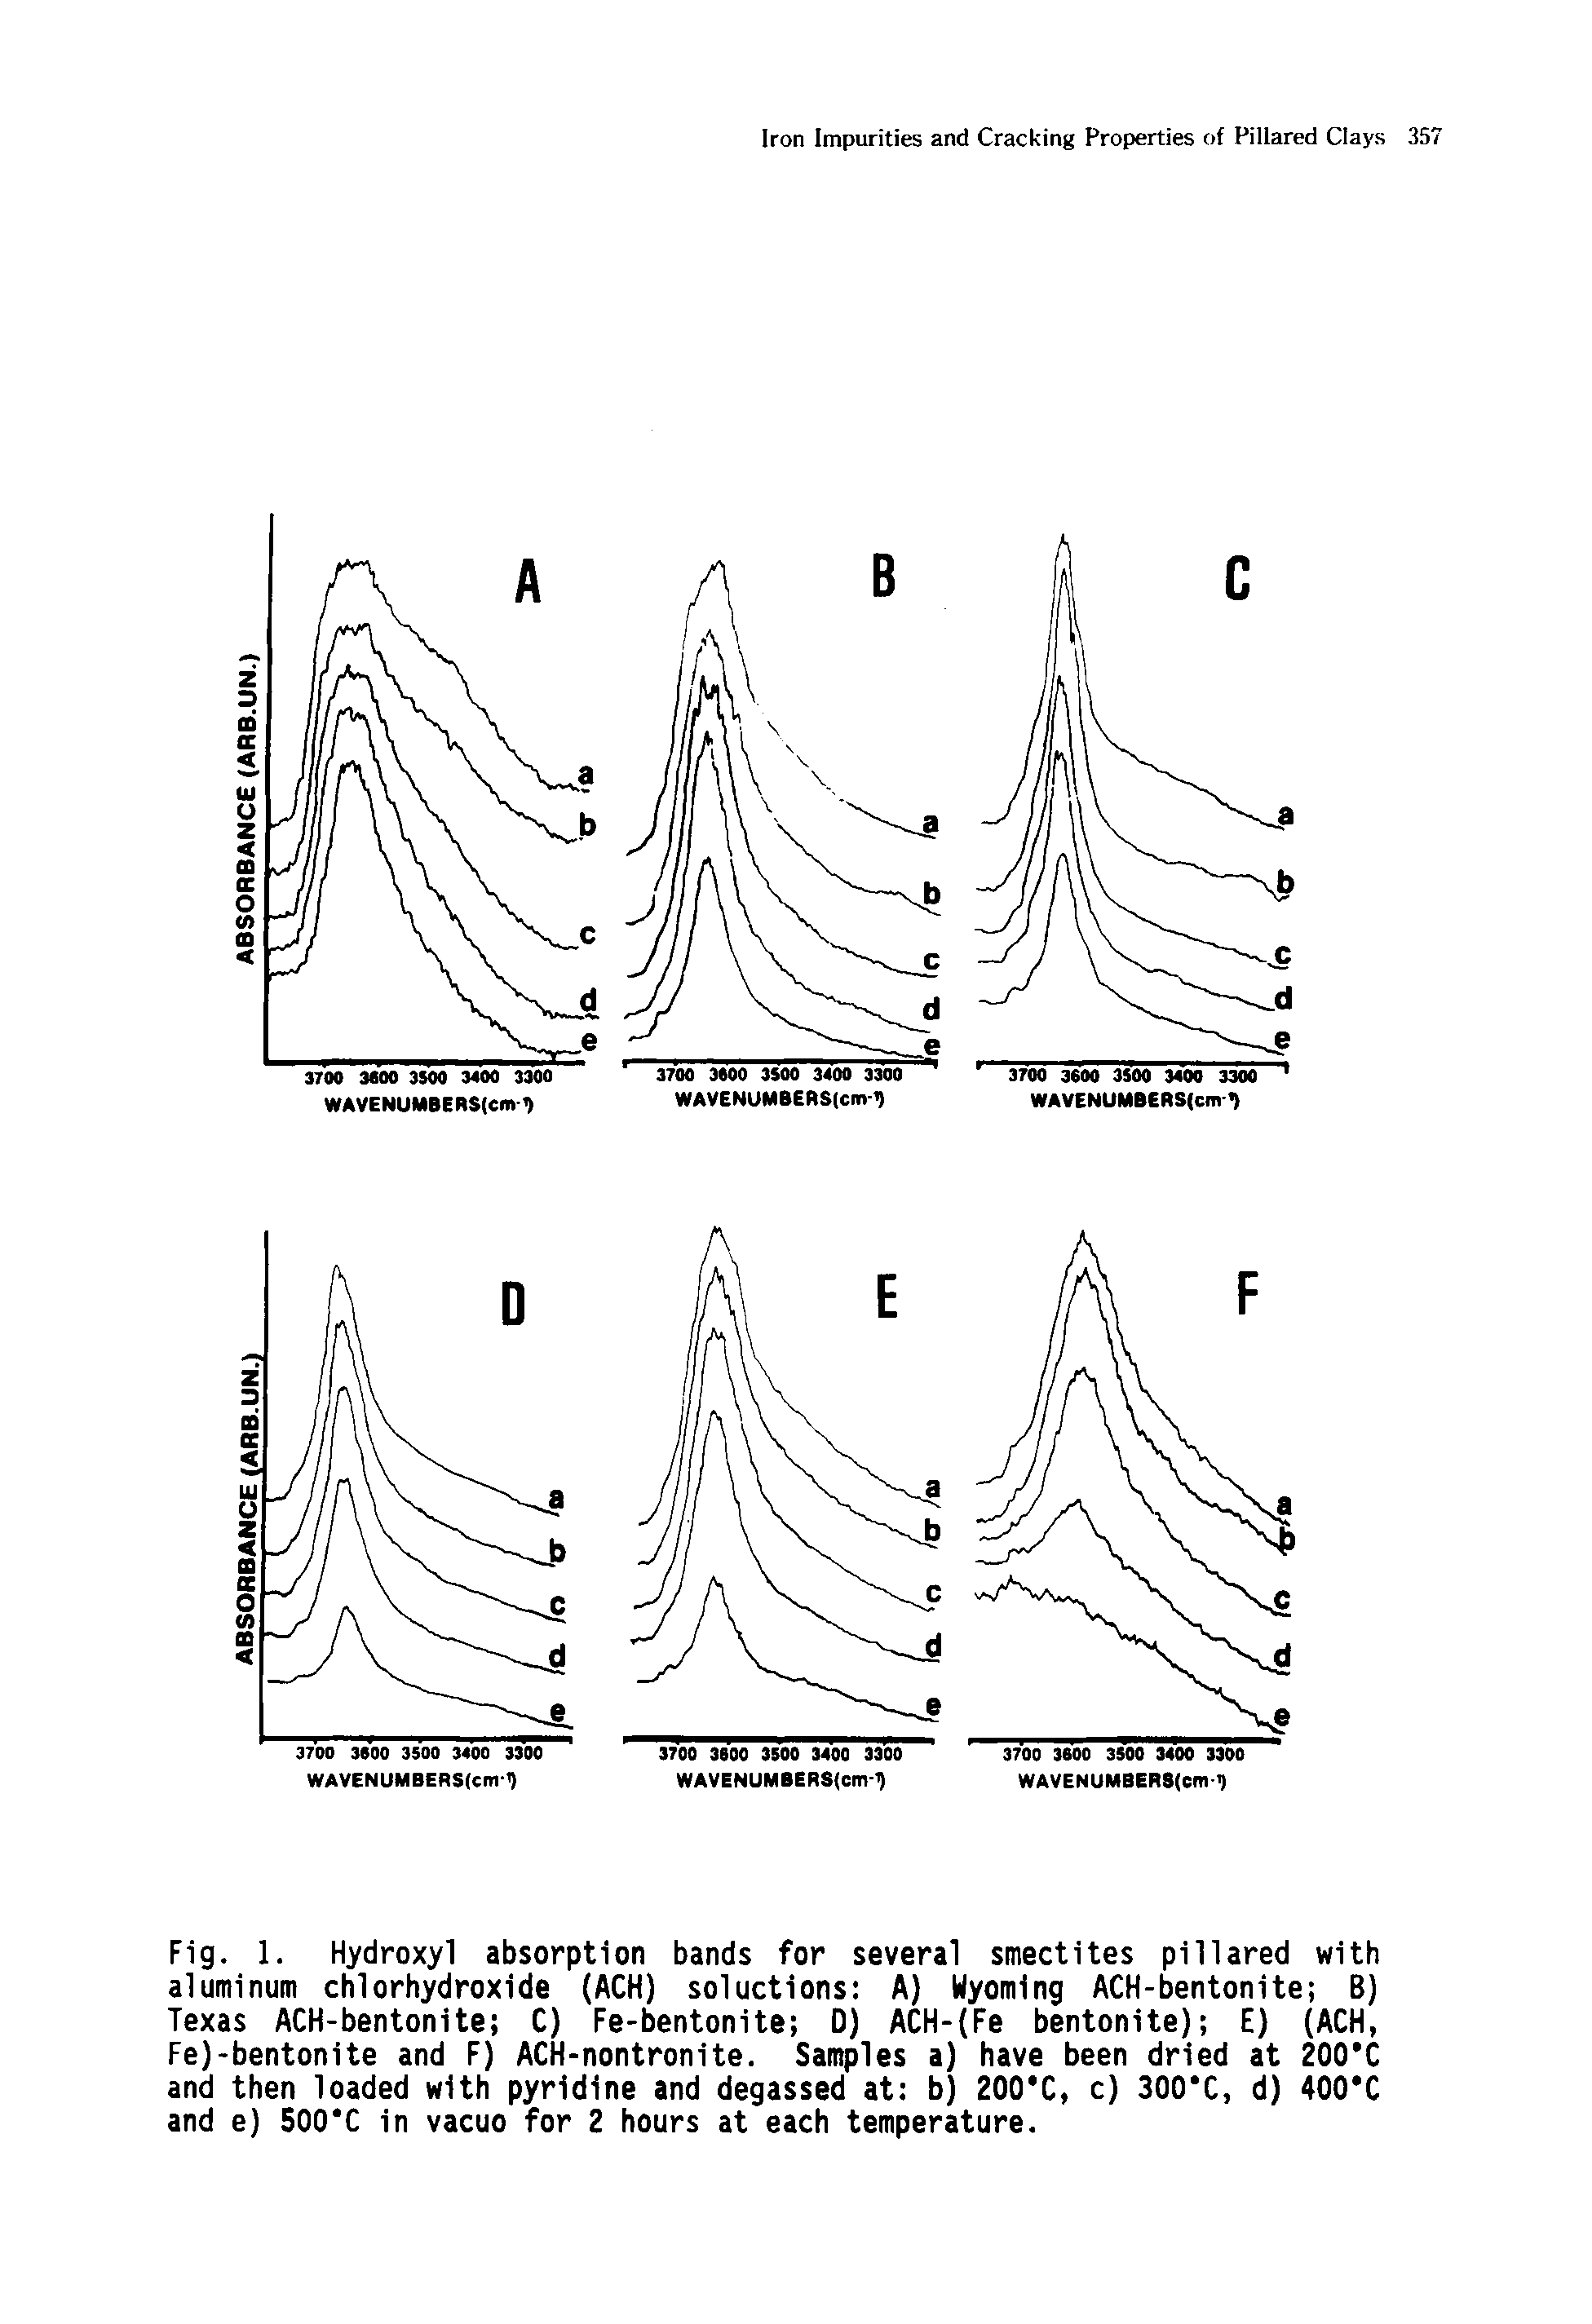 Fig. 1. Hydroxyl absorption bands for several smectites pillared with aluminum chlorhydroxide (ACH) soluctions A) Wyoming ACH-bentonite B) Texas ACH-bentonite C) Fe-bentonite D) ACH- Fe bentonite) E) (ACH, Fe)-bentonite and F) ACH-nontronite. Samples a) have been dried at 200 C and then loaded with pyridine and degassed at b) 200 C, c) 300 C, d) 400 C and e) 500 C in vacuo for 2 hours at each temperature.